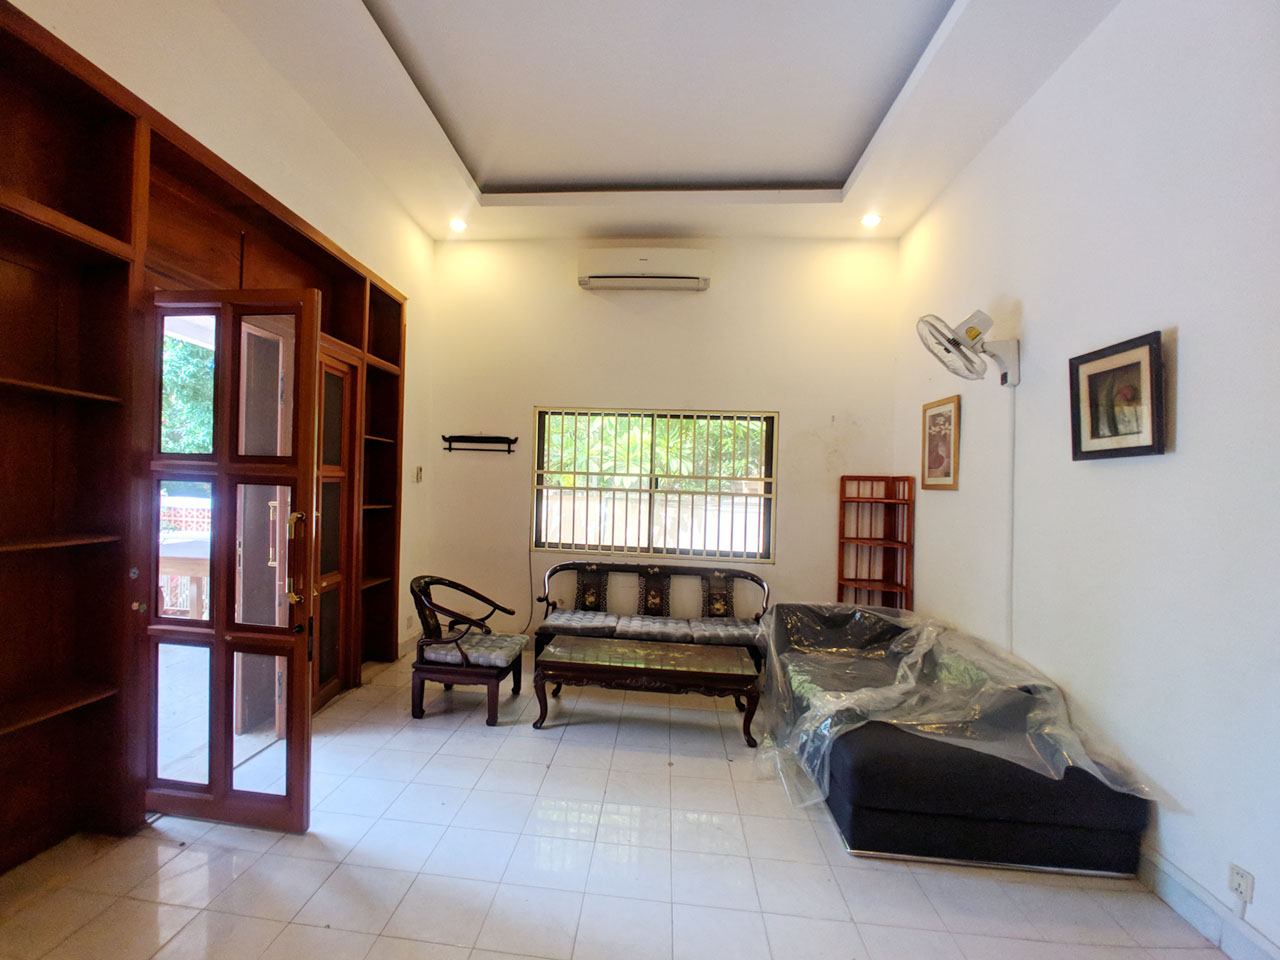 Green garden 3 beds villa with pool for rent @ BKK 1